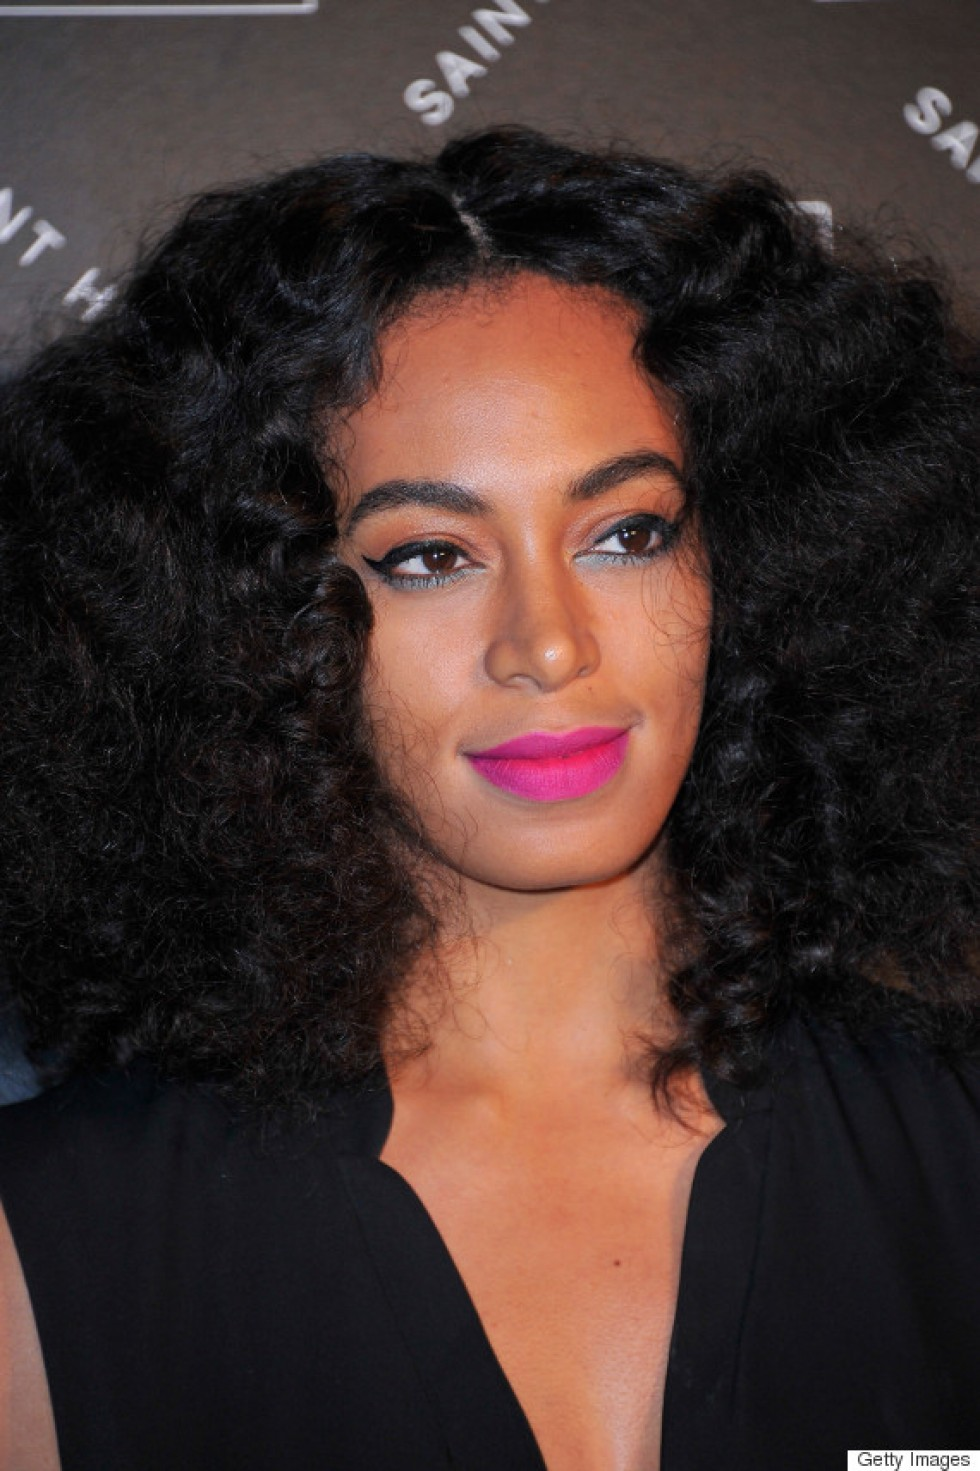 Black Girl Health SOLANGE KNOWLES SPORTS A FUN NEW LOOK